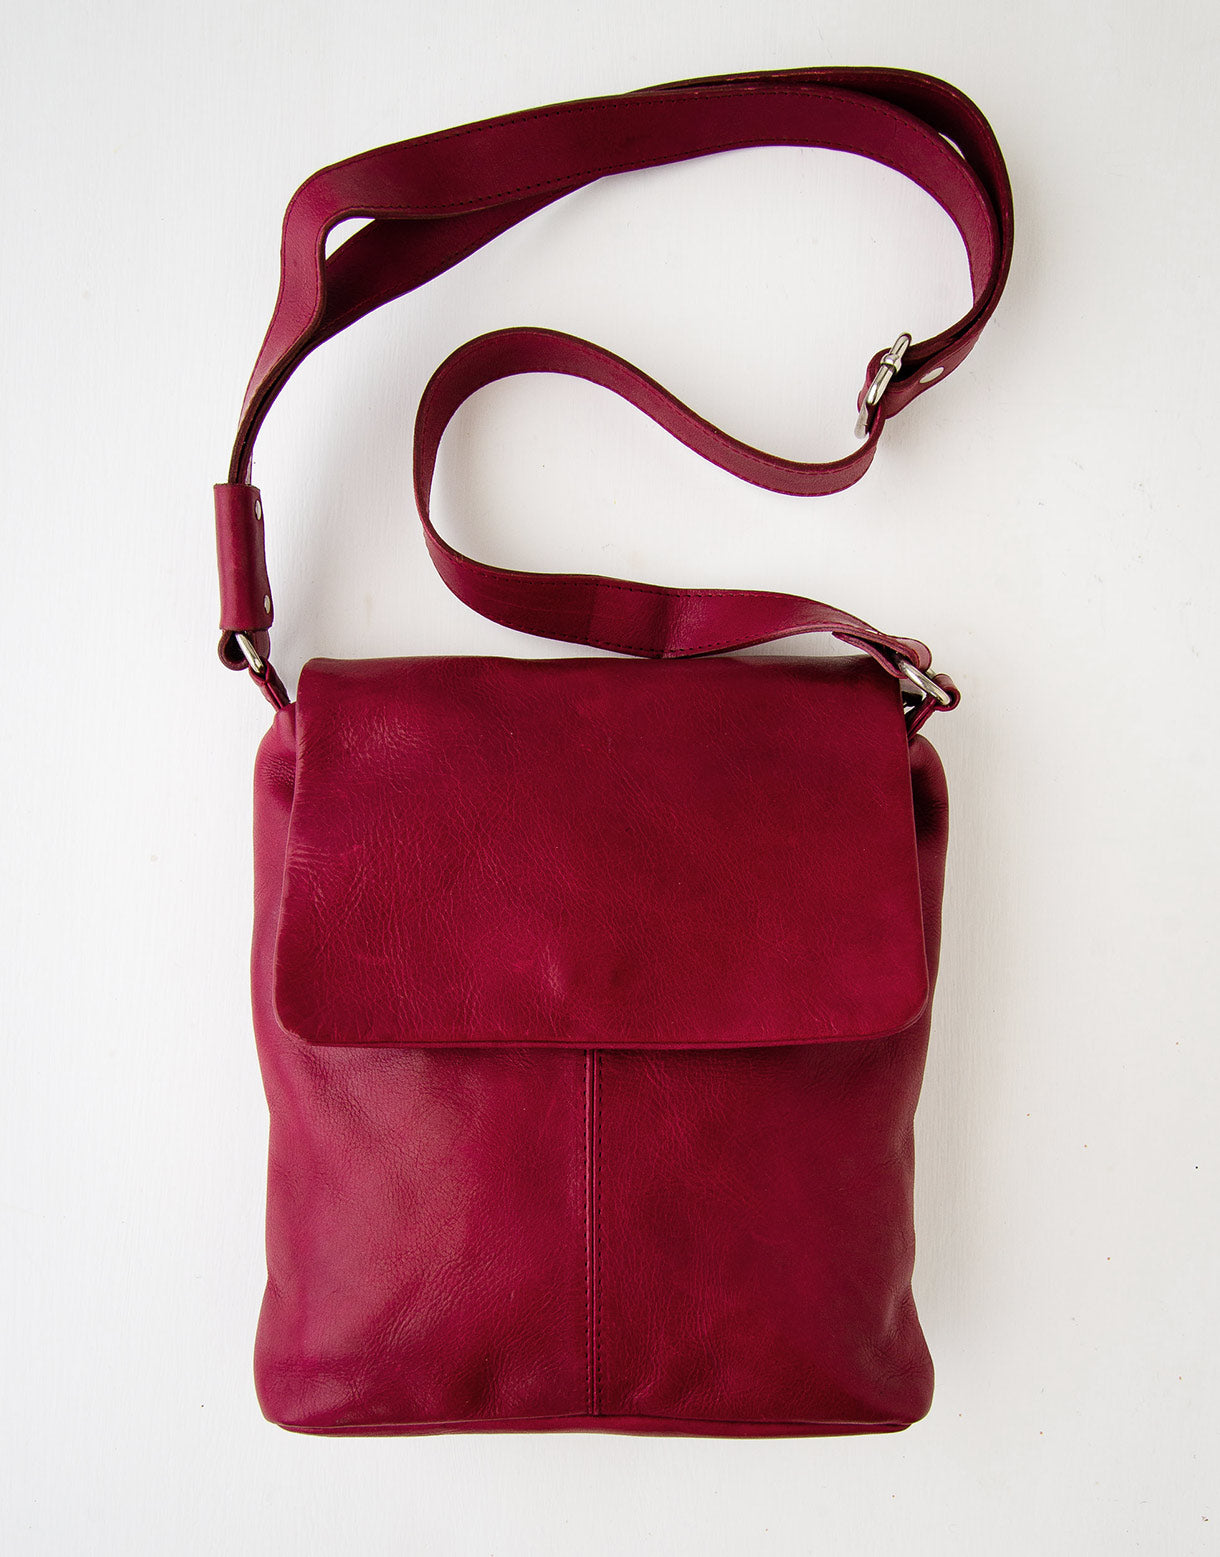 Kit Leather Bag in Red